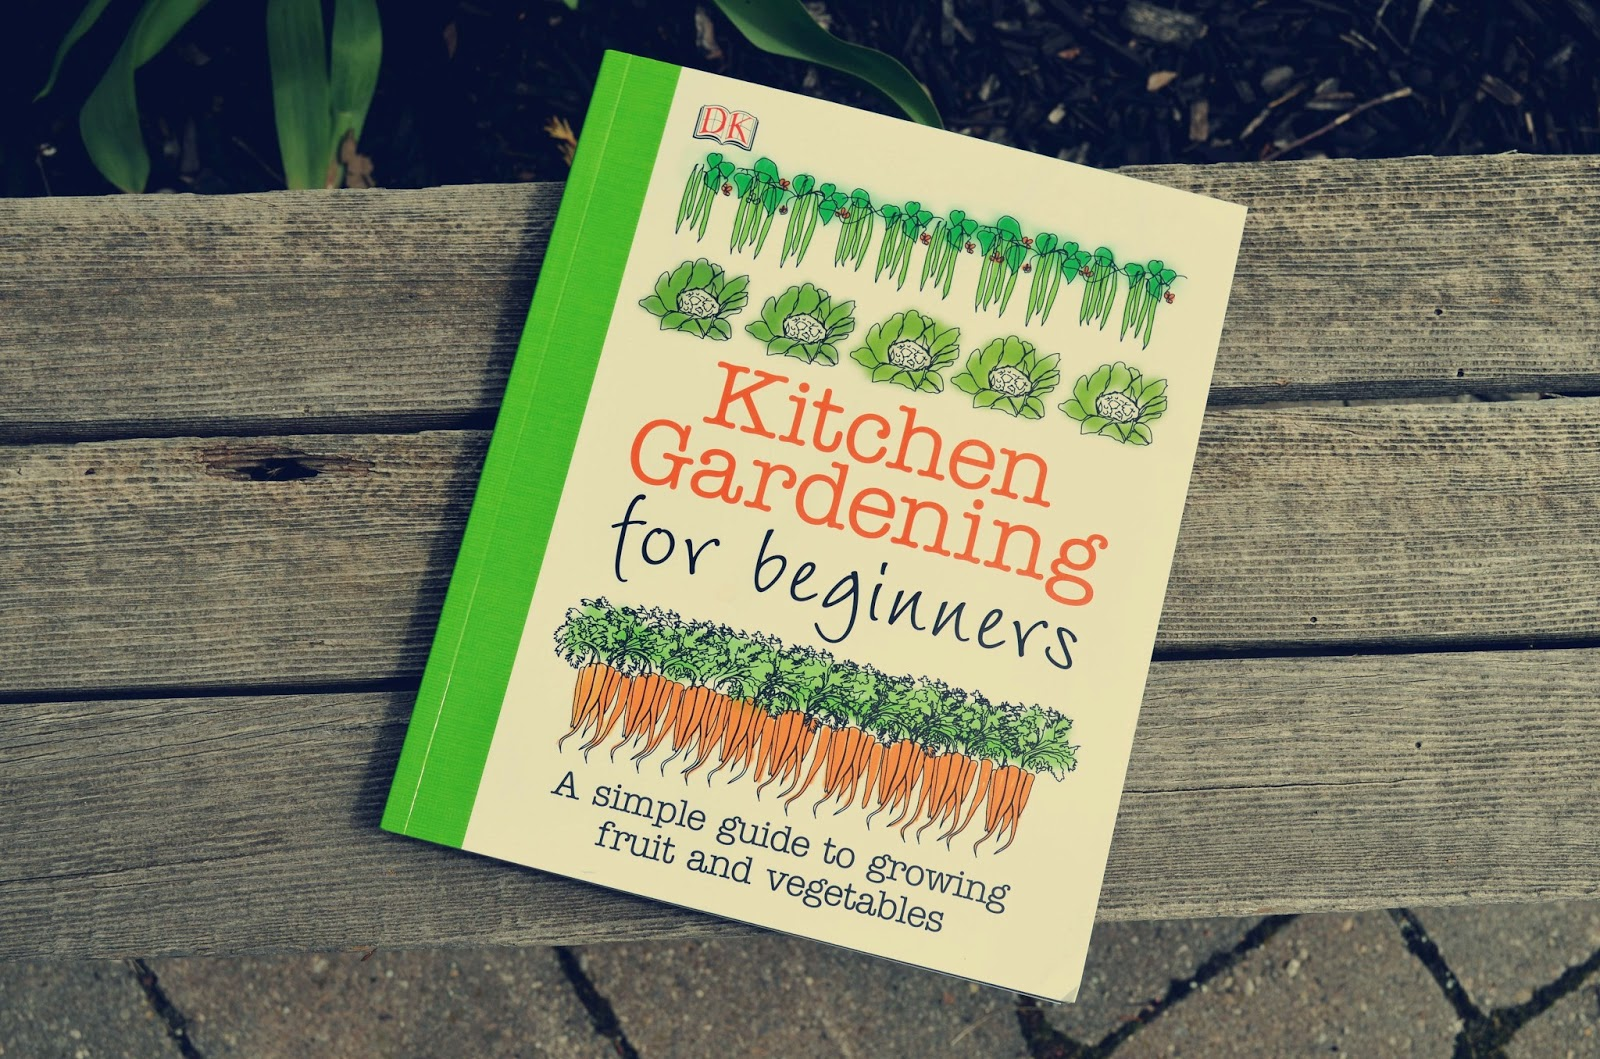 Woman In Real Life The Art Of The Everyday Gardening For Beginners Book Review